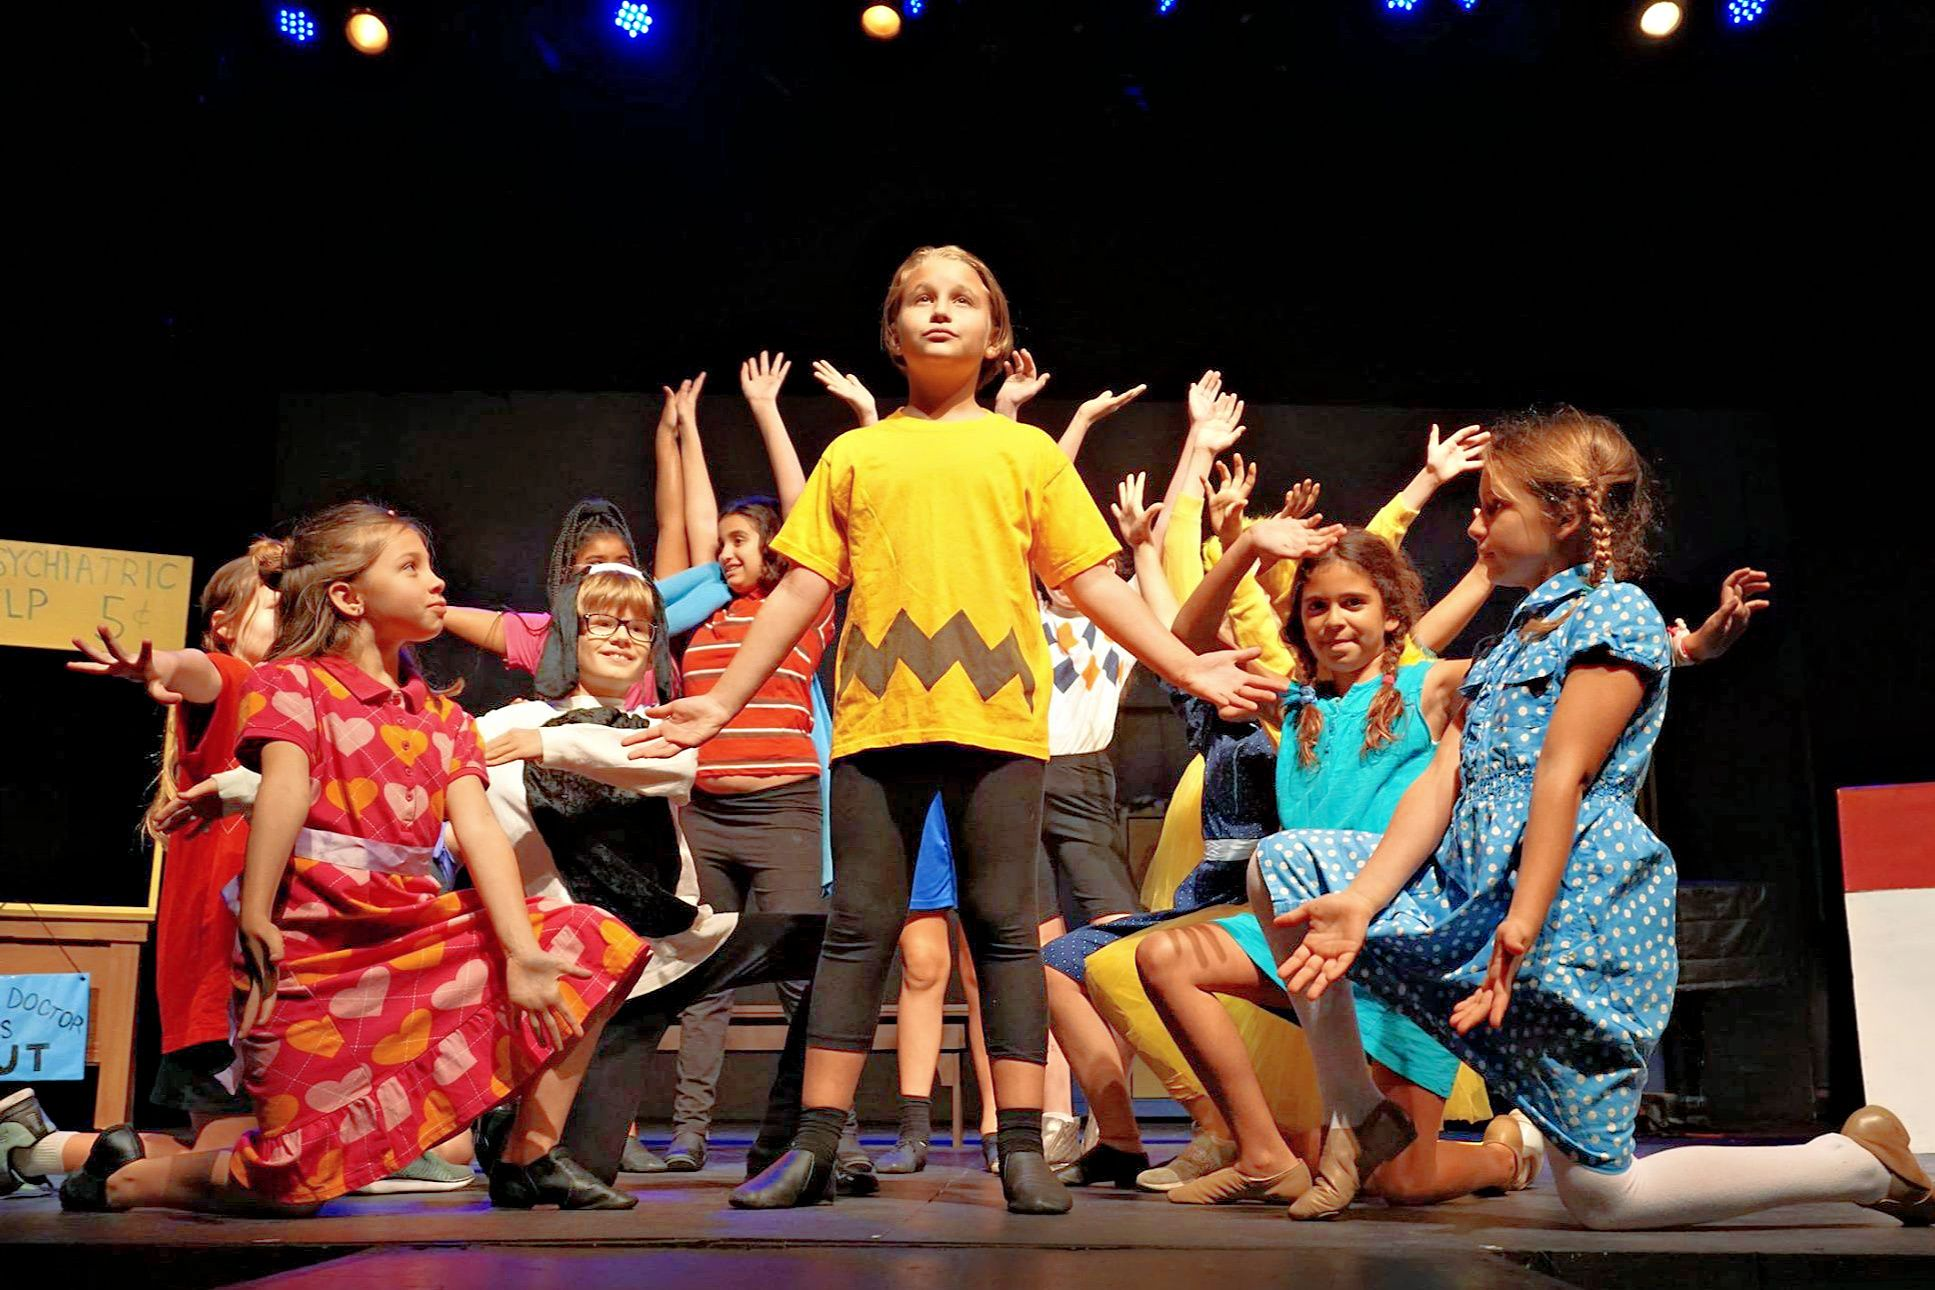 Musical theater and performing arts summer camps in la and